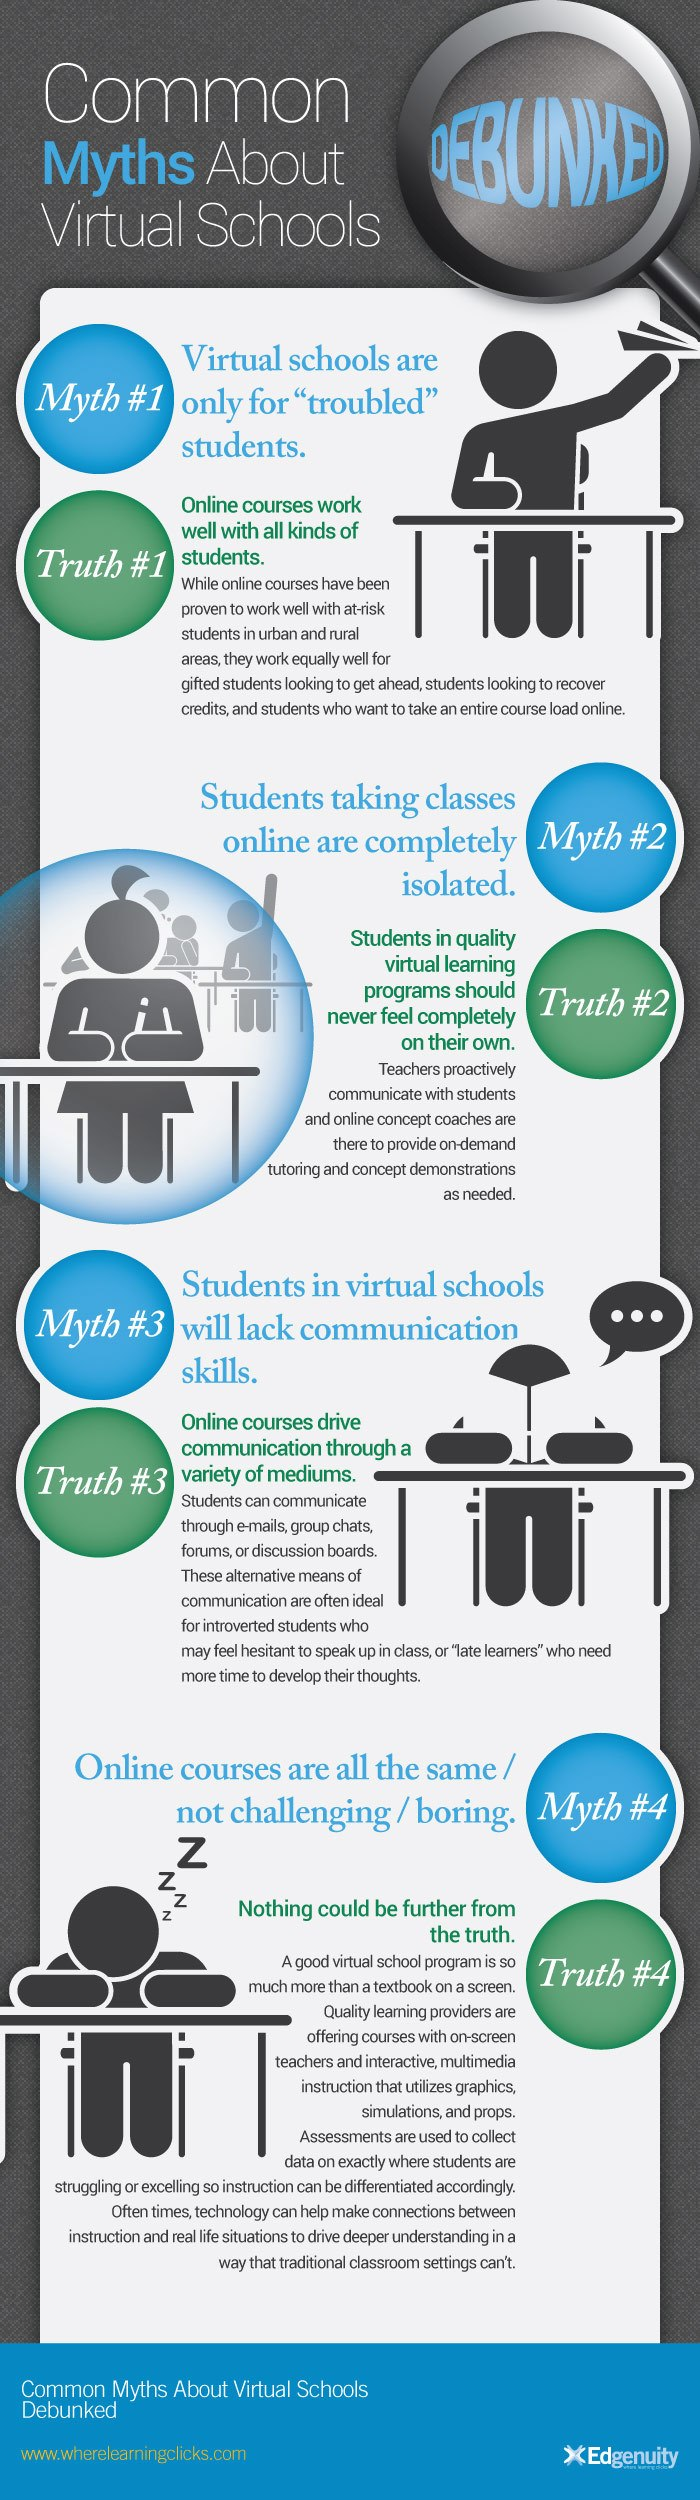 Debunking Common Myths About Virtual Schools Infographic